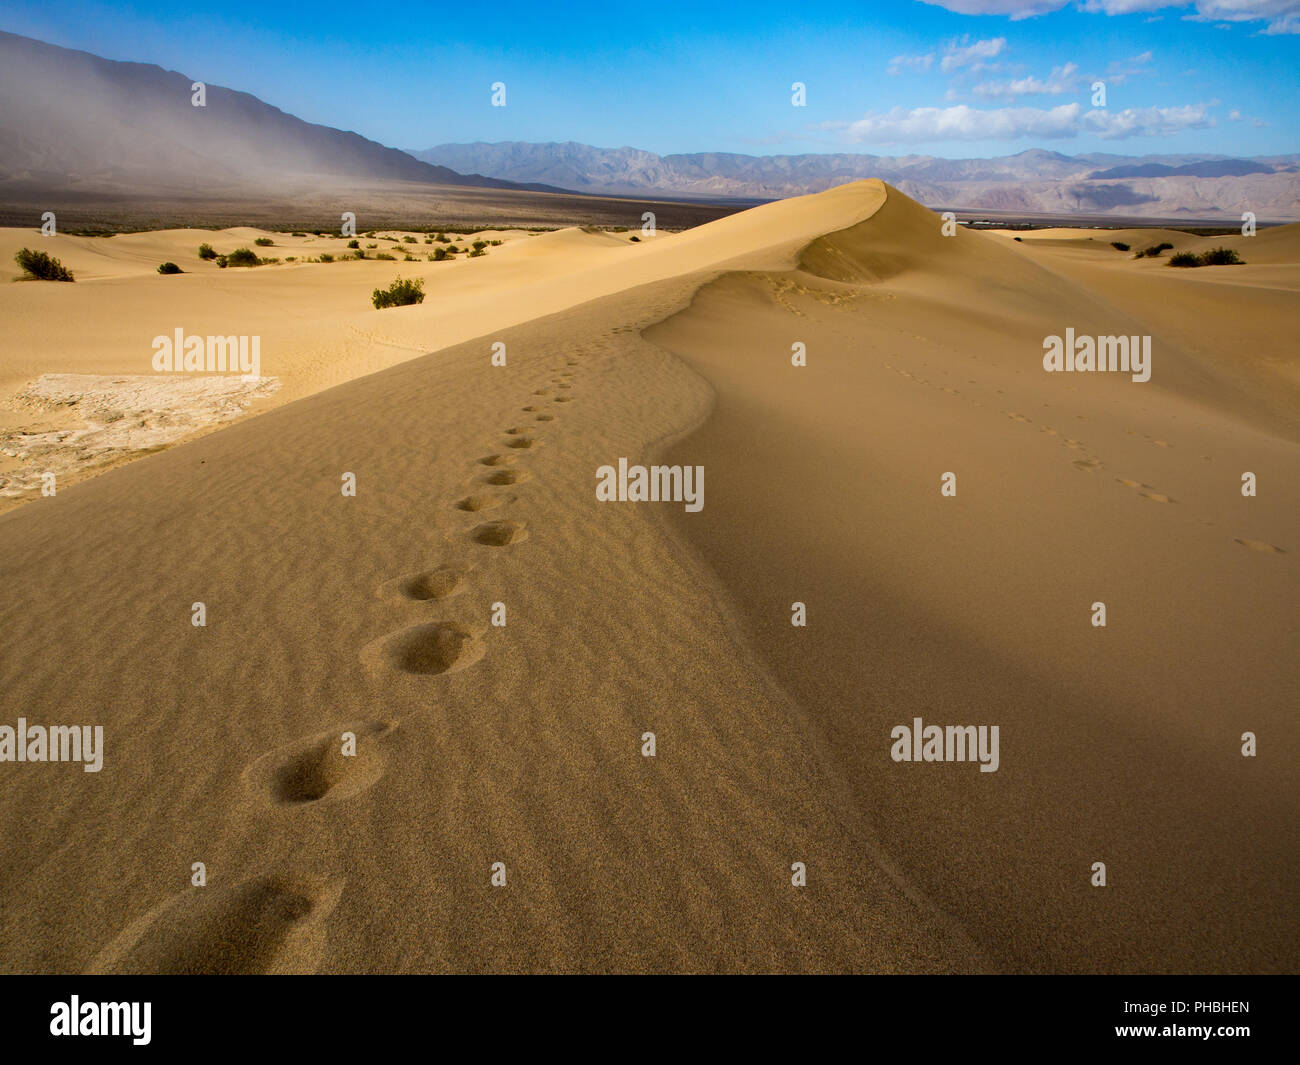 Footprints in the Sand, Path Along Sand Dune Ridge, Death Valley National Park - Stock Image